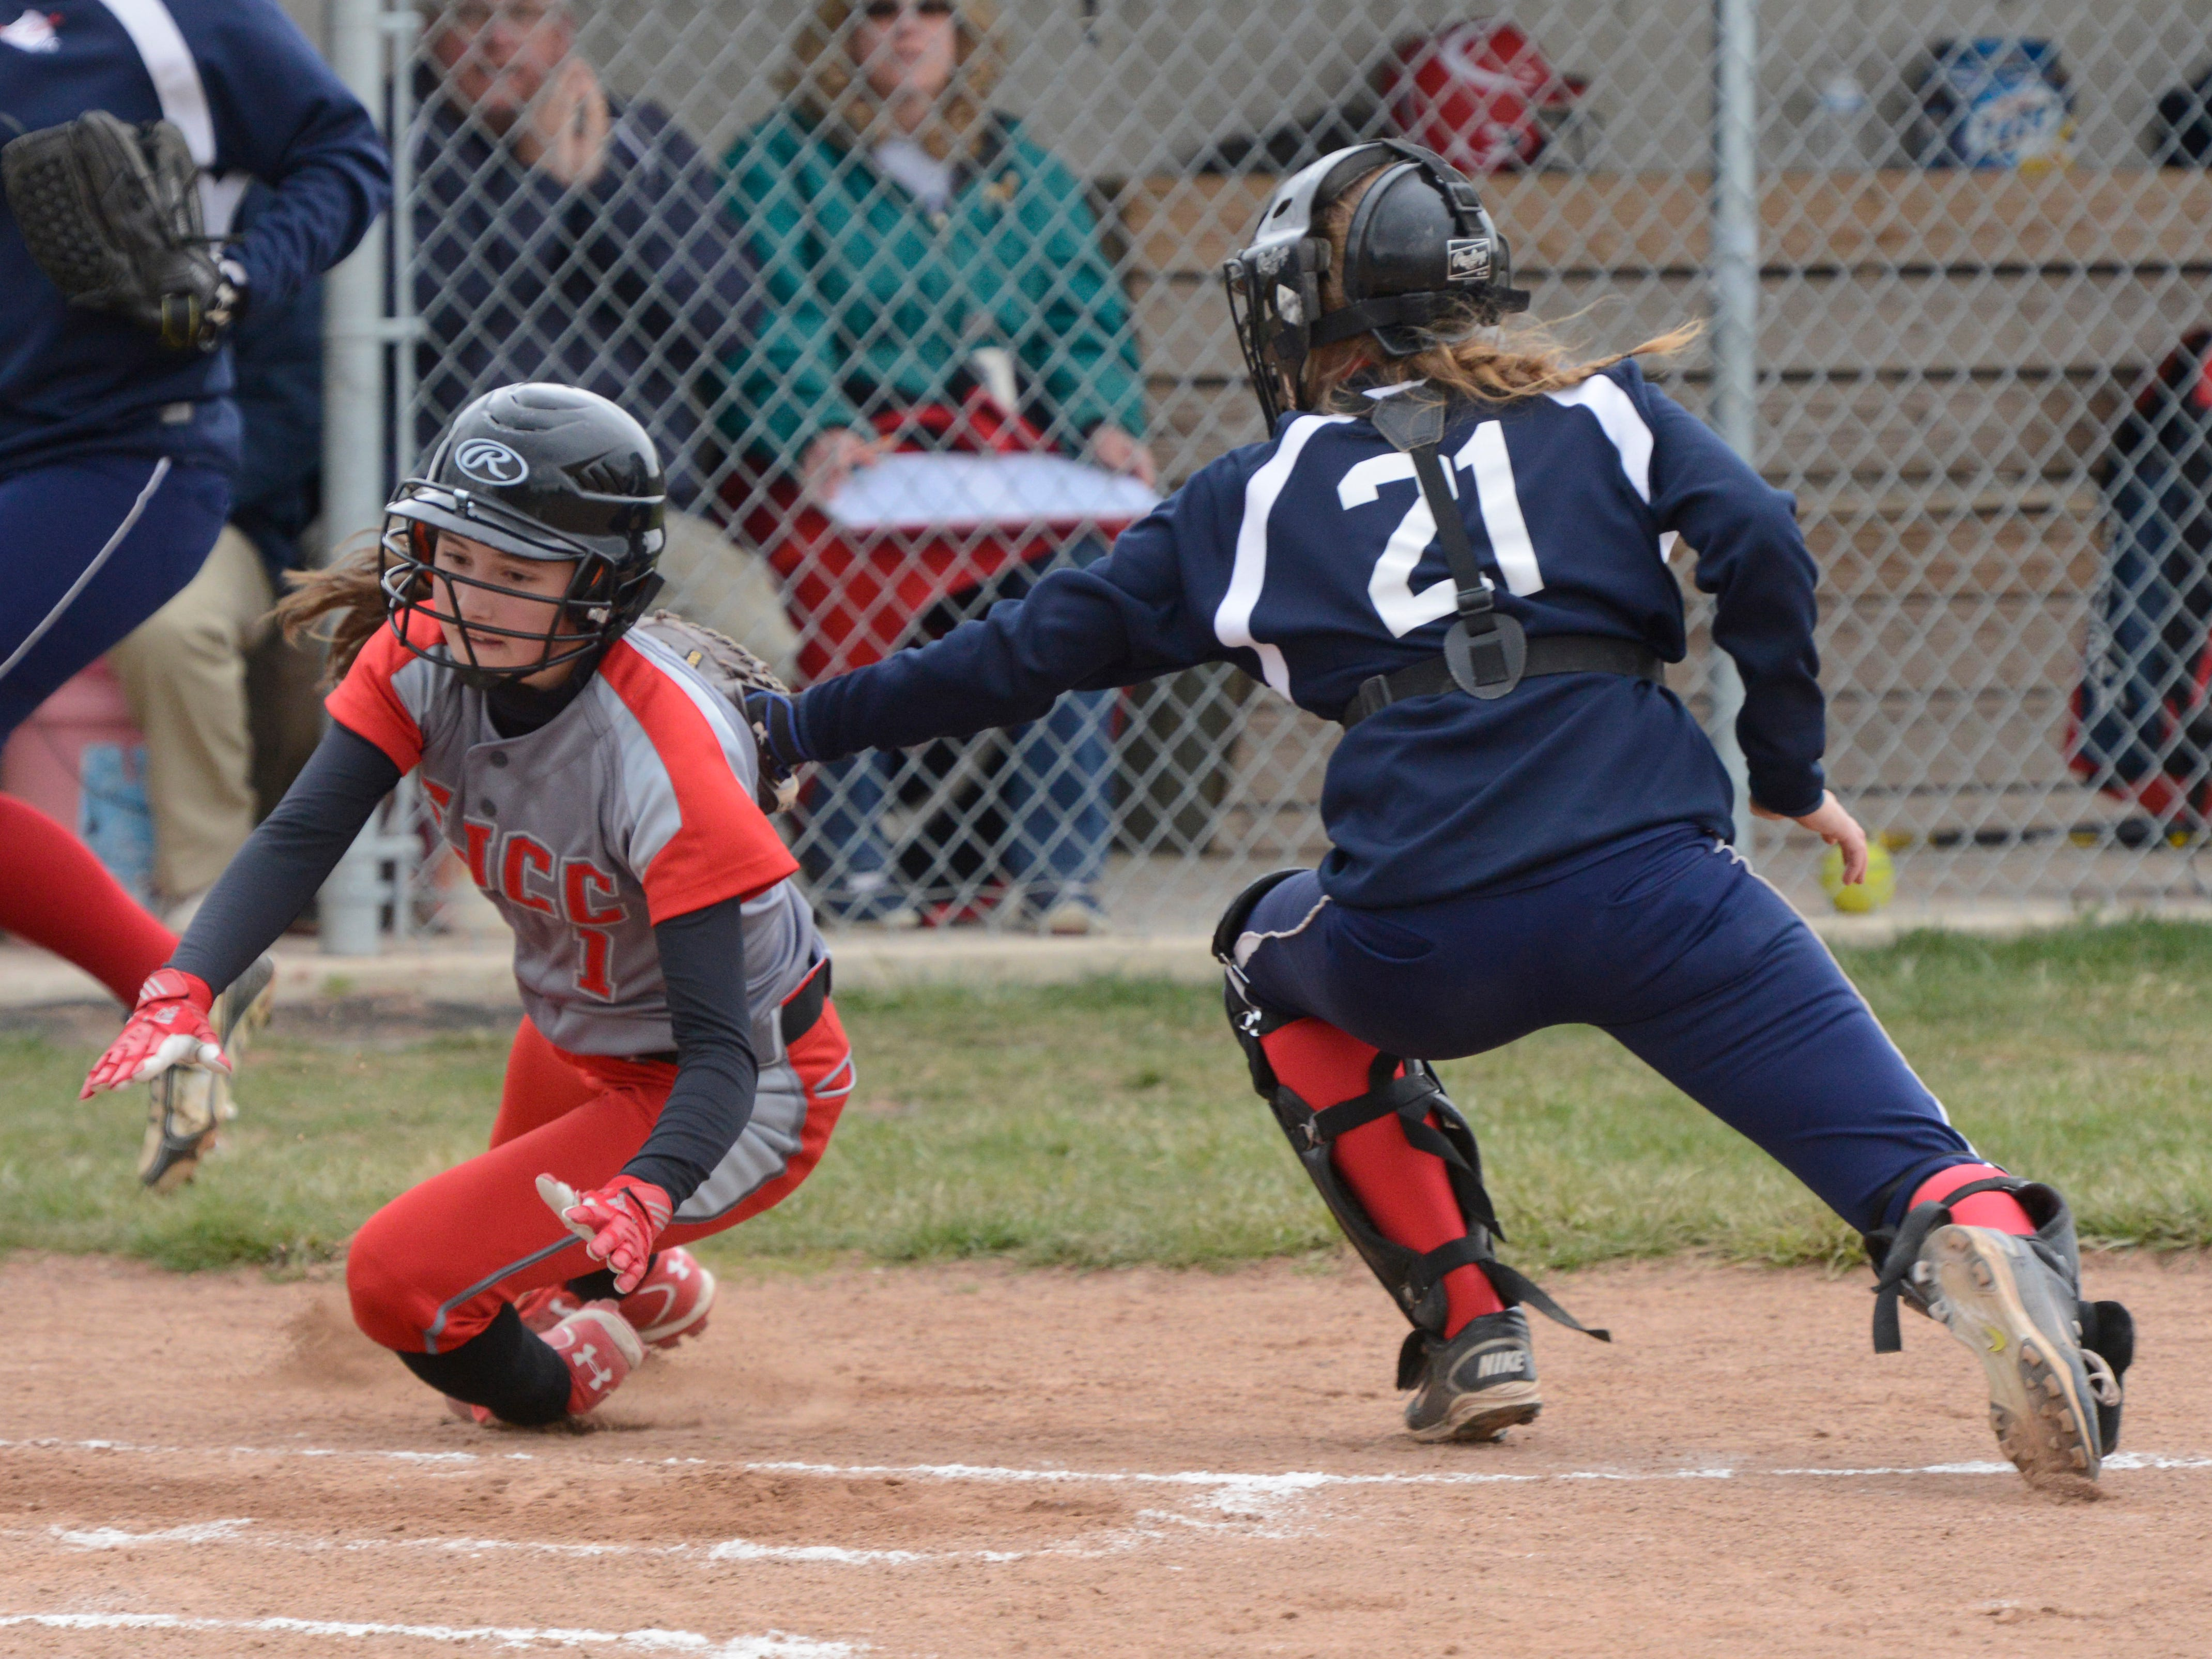 St. Joseph Central Catholic's Miranda Wammes is tagged out at home by Lakota catcher Bree Long-Meyer in the top of the third inning at Lakota High School. Lakota won 10-0 on Monday.